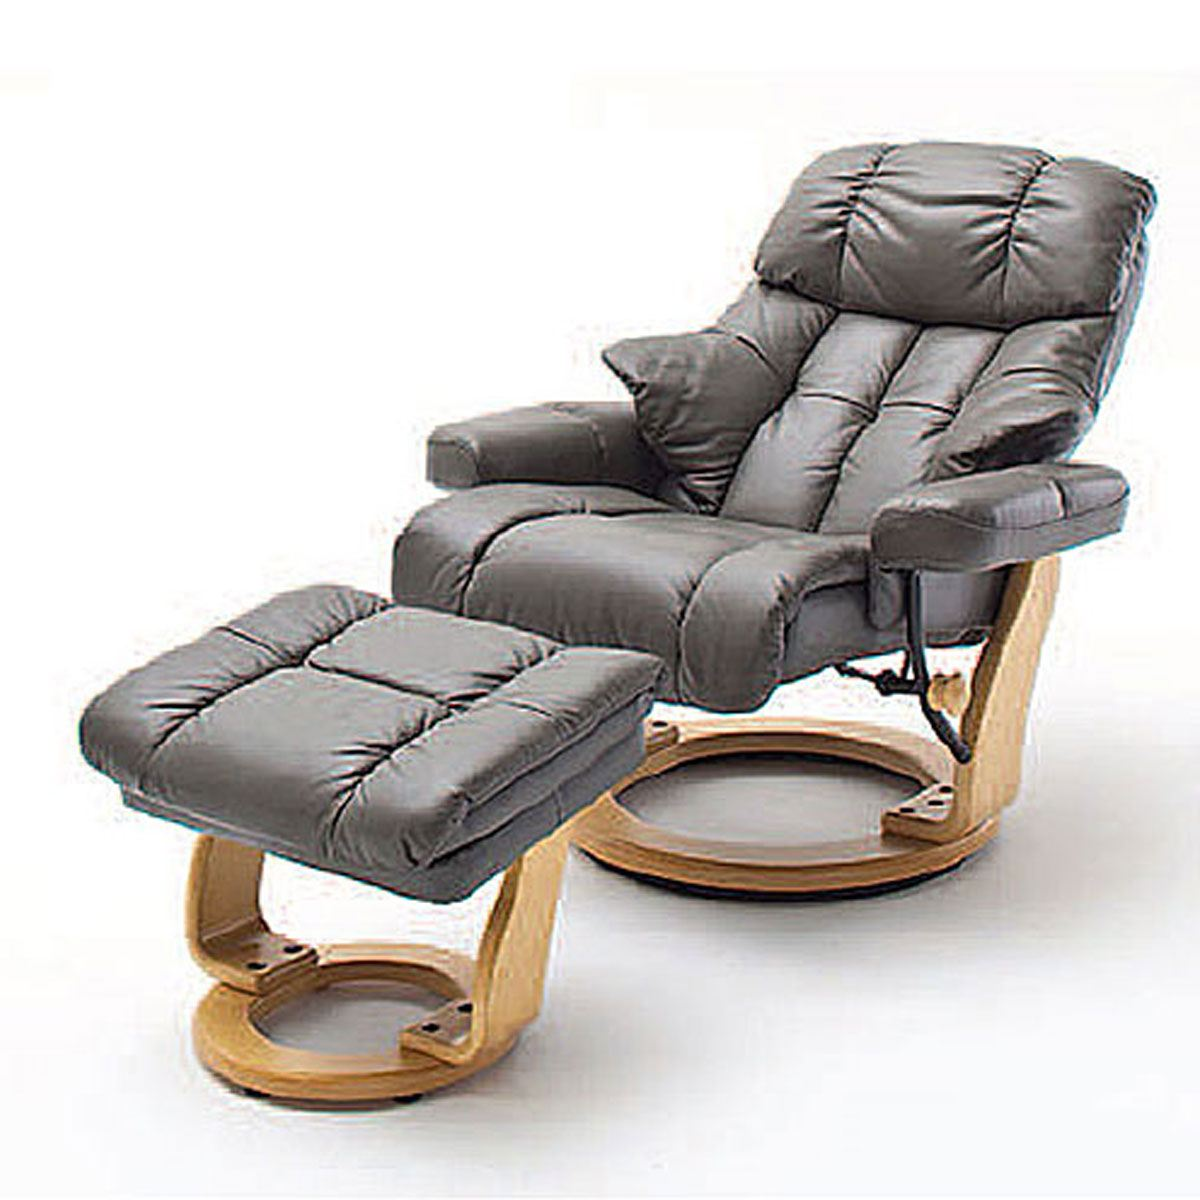 Relaxsessel Stressless Ohne Hocker Stressless Sessel Ohne Hocker